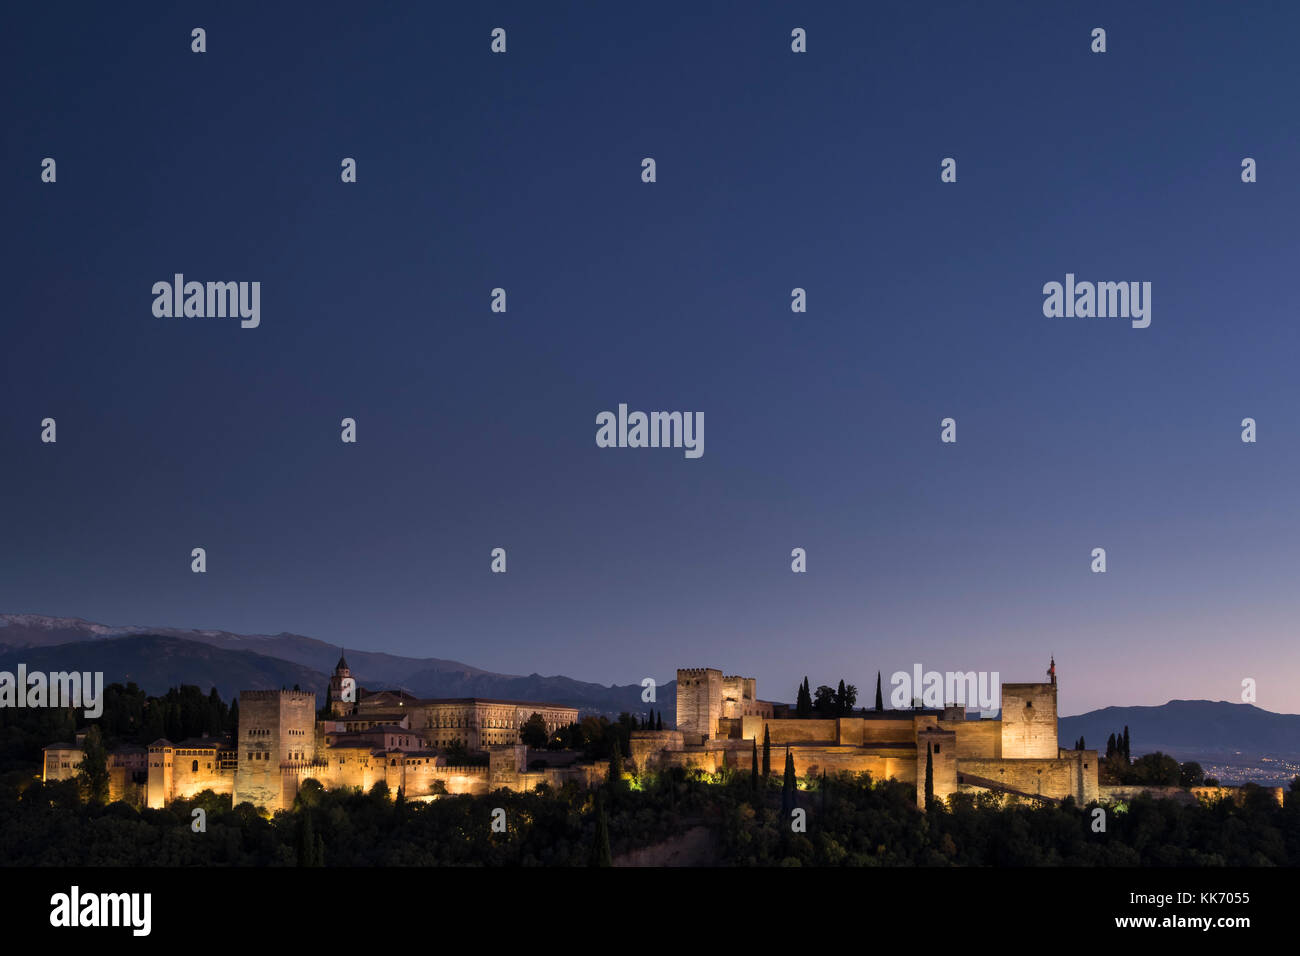 Granada, Spain. October, 2017. The Alhambra seen from viewpoint of Albaicin - Stock Image